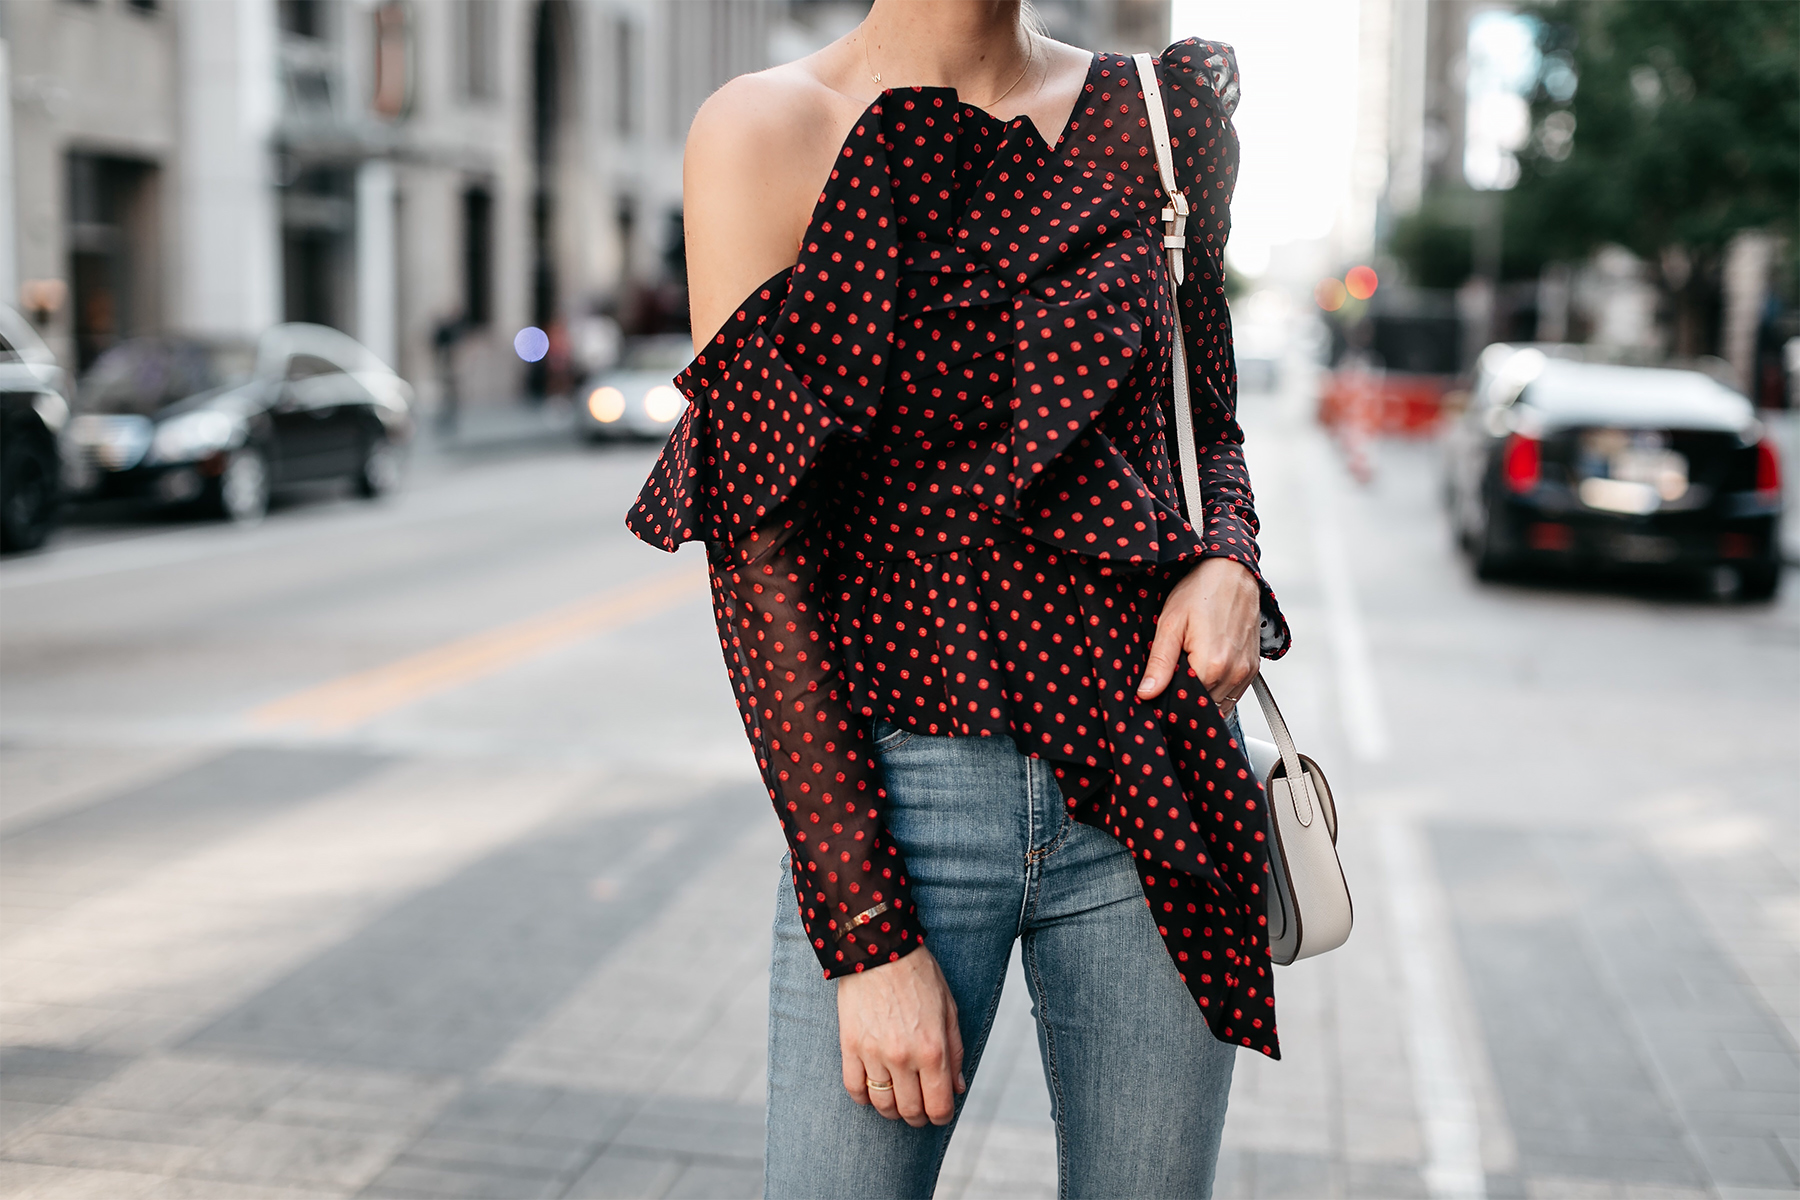 Woman Wearing Self Portrait One-shoulder Embroidered Top Fashion Jackson Dallas Blogger Fashion Blogger Street Style